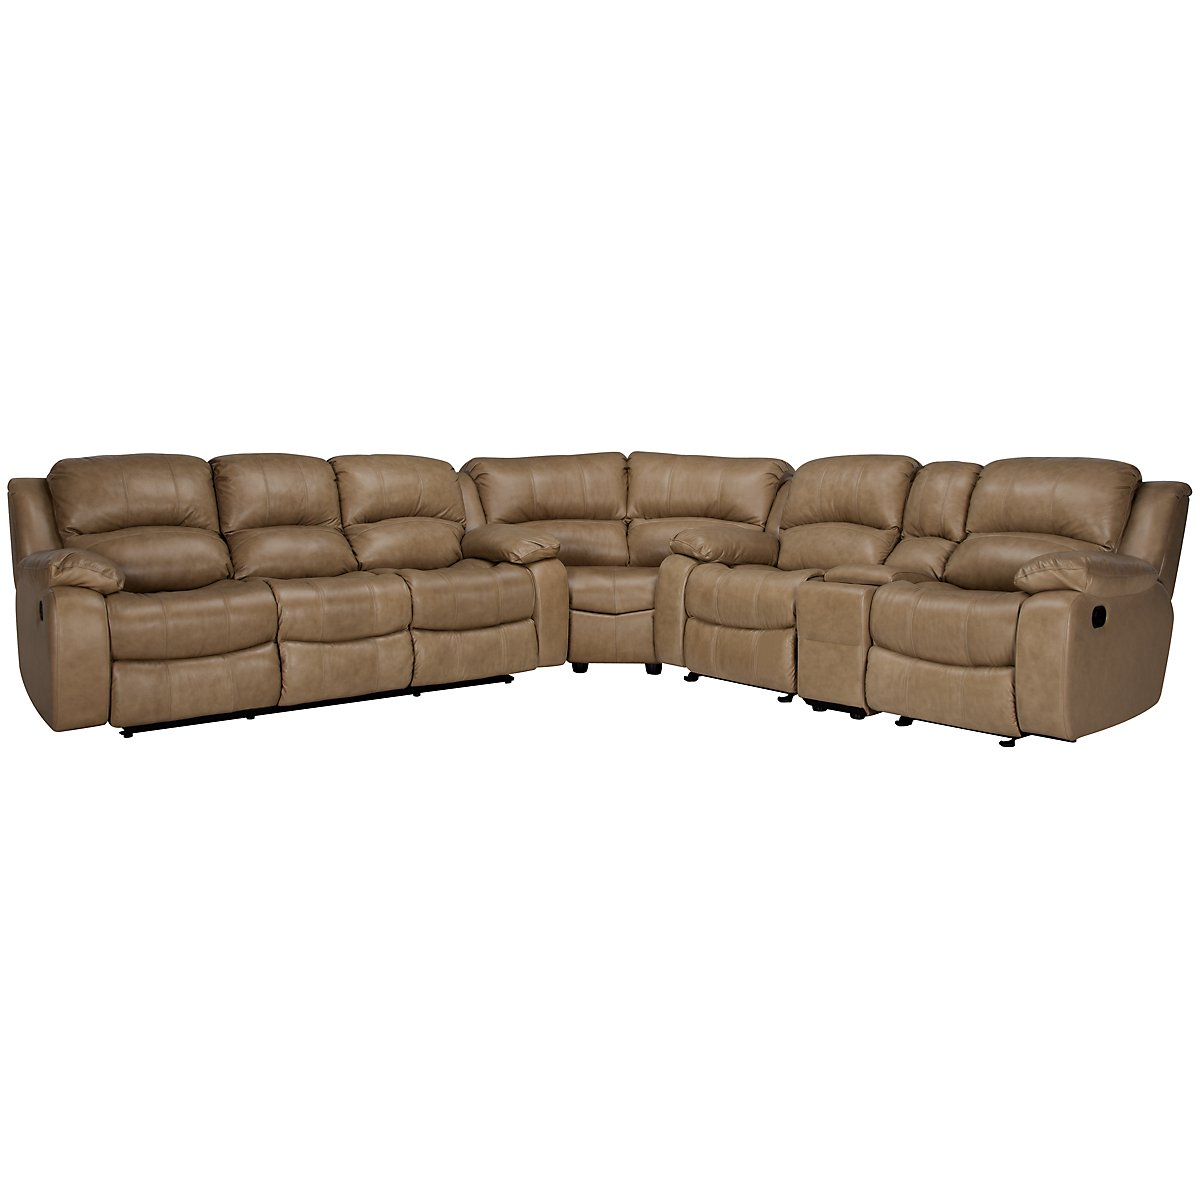 Tyler3 Dark Taupe Leather & Vinyl Two-Arm Power Reclining Sectional